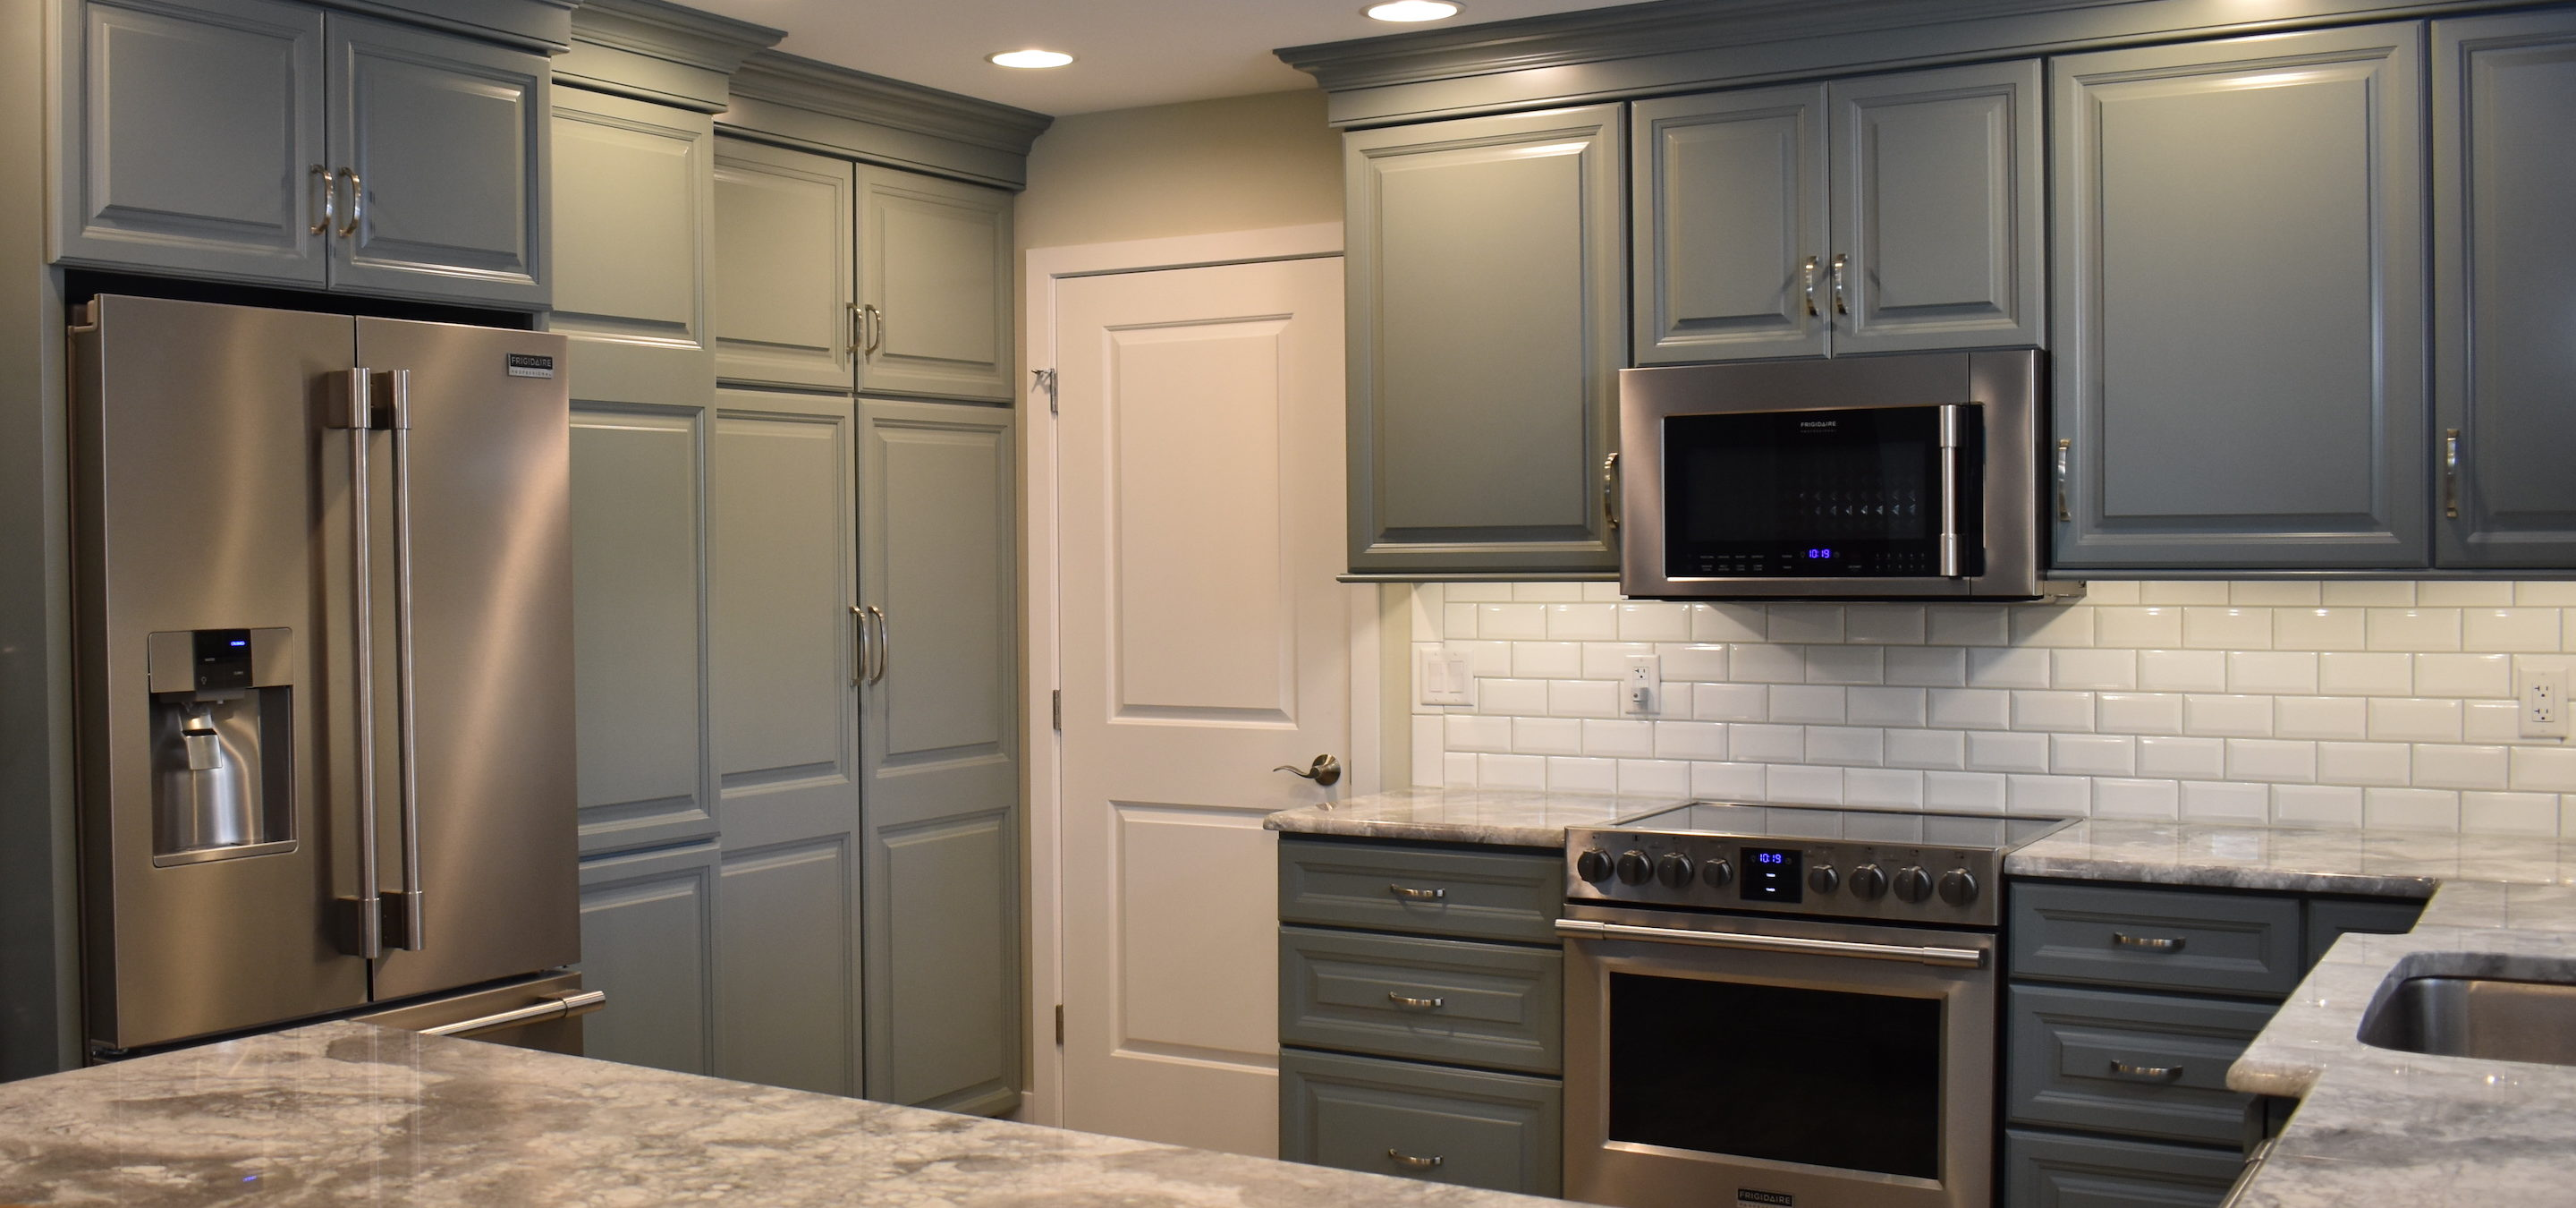 RM Kitchens, Inc. | Custom Cabinet Makers & Installers in PA ...